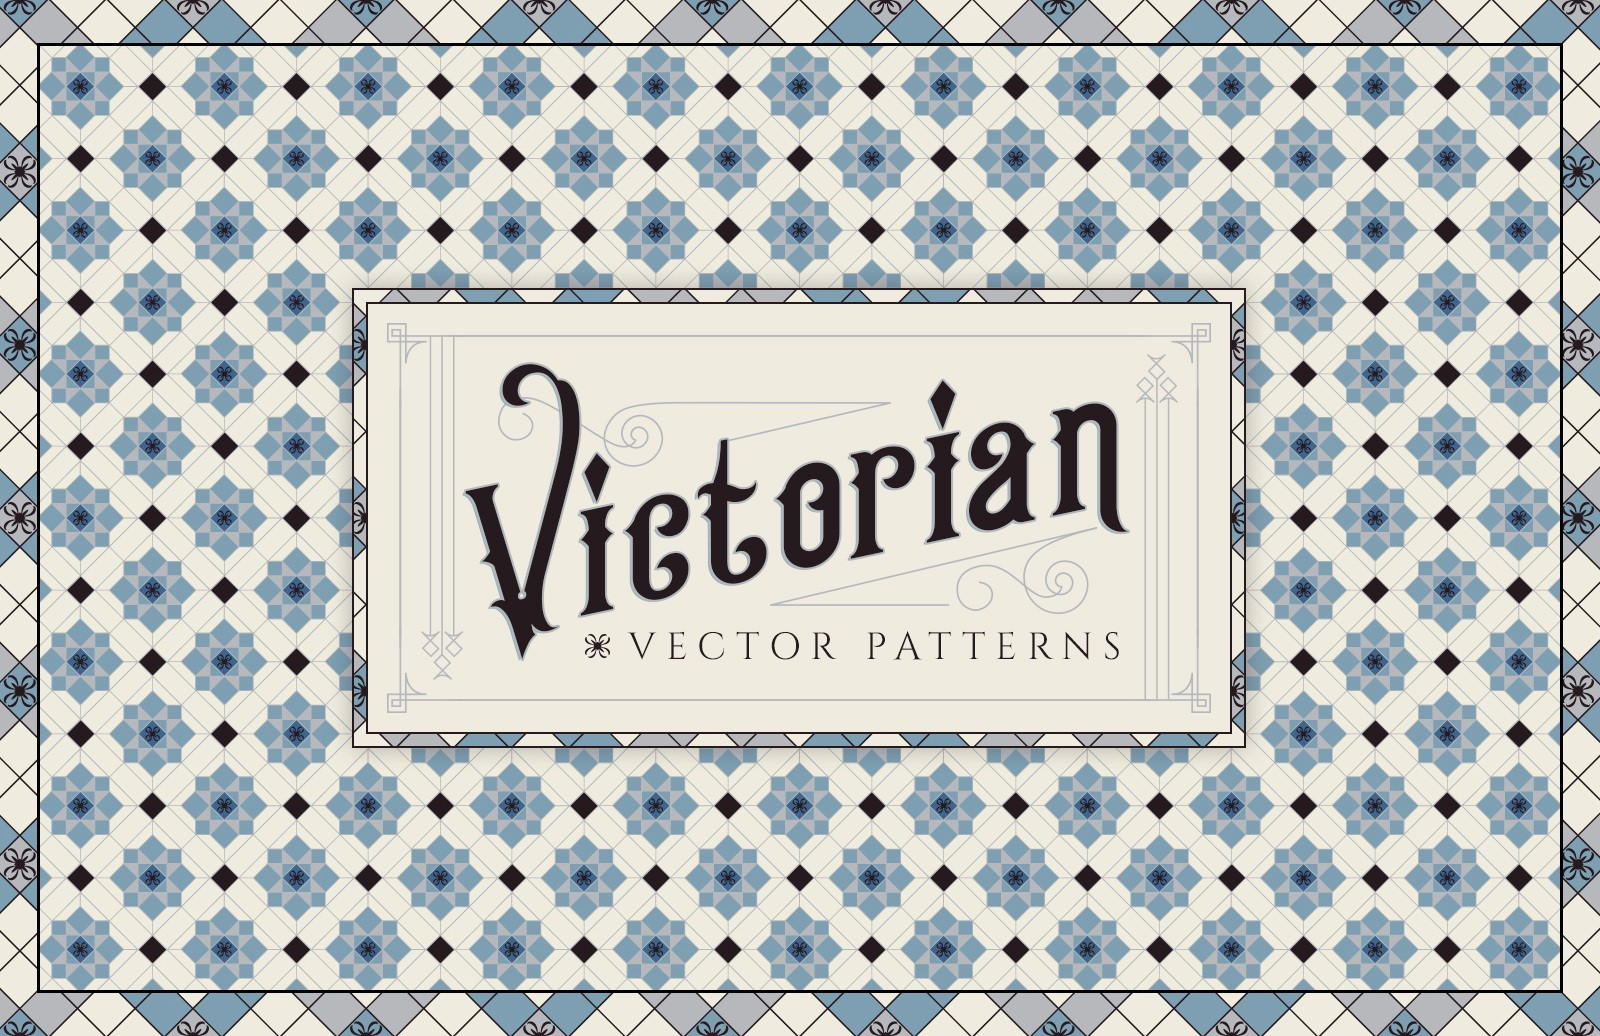 Victorian Vector Patterns